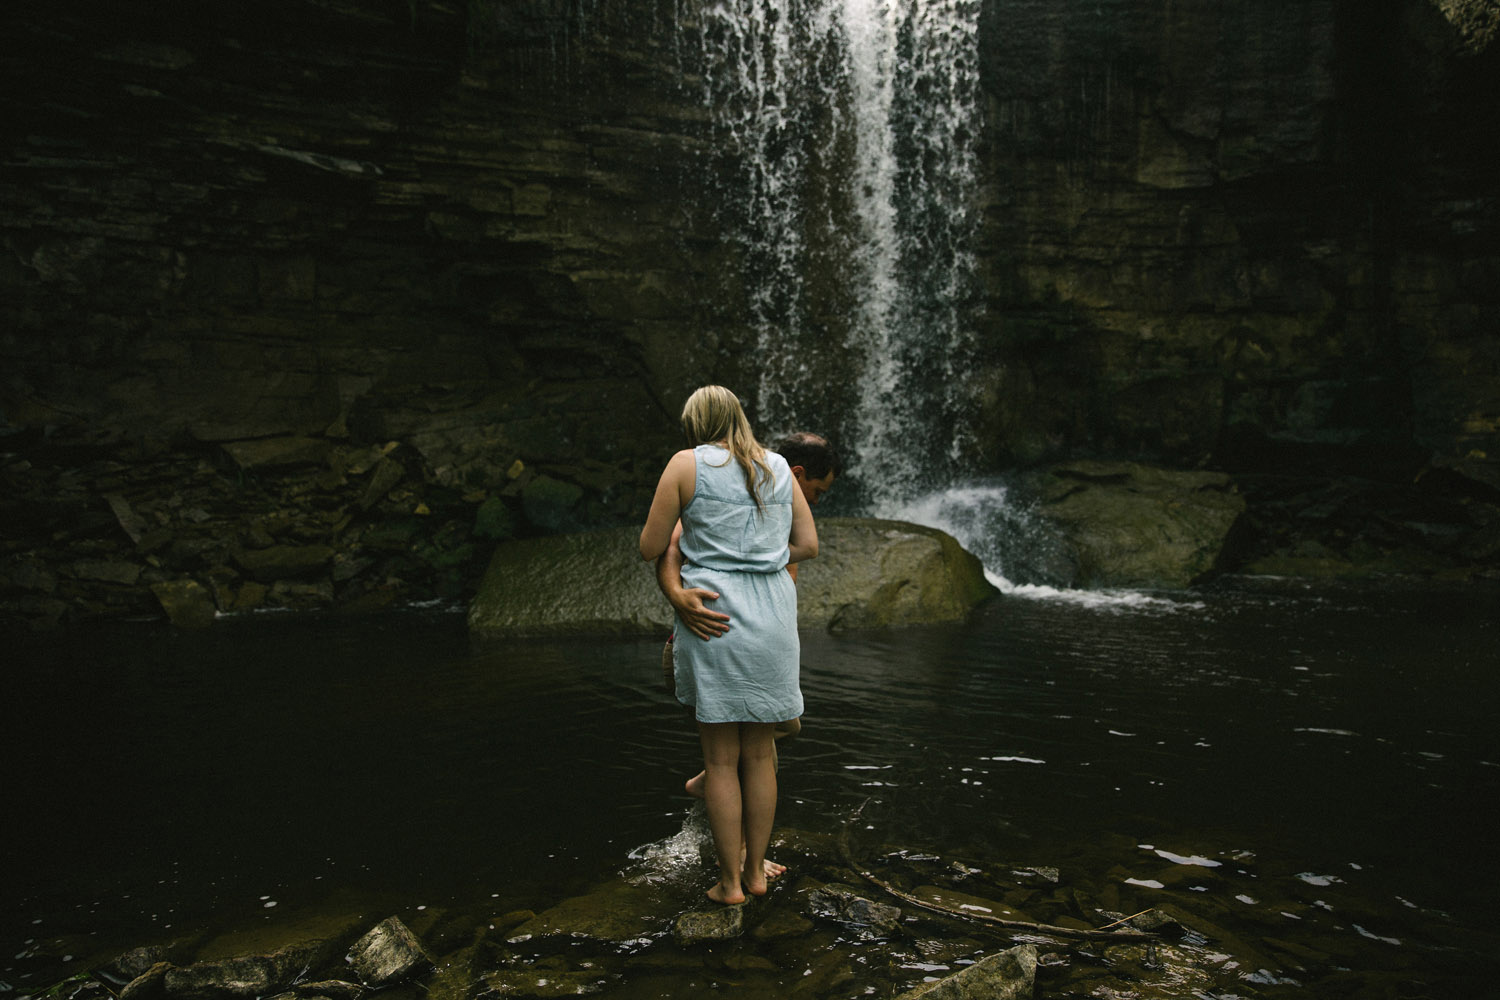 201-WaterfallEngagementSession.jpg